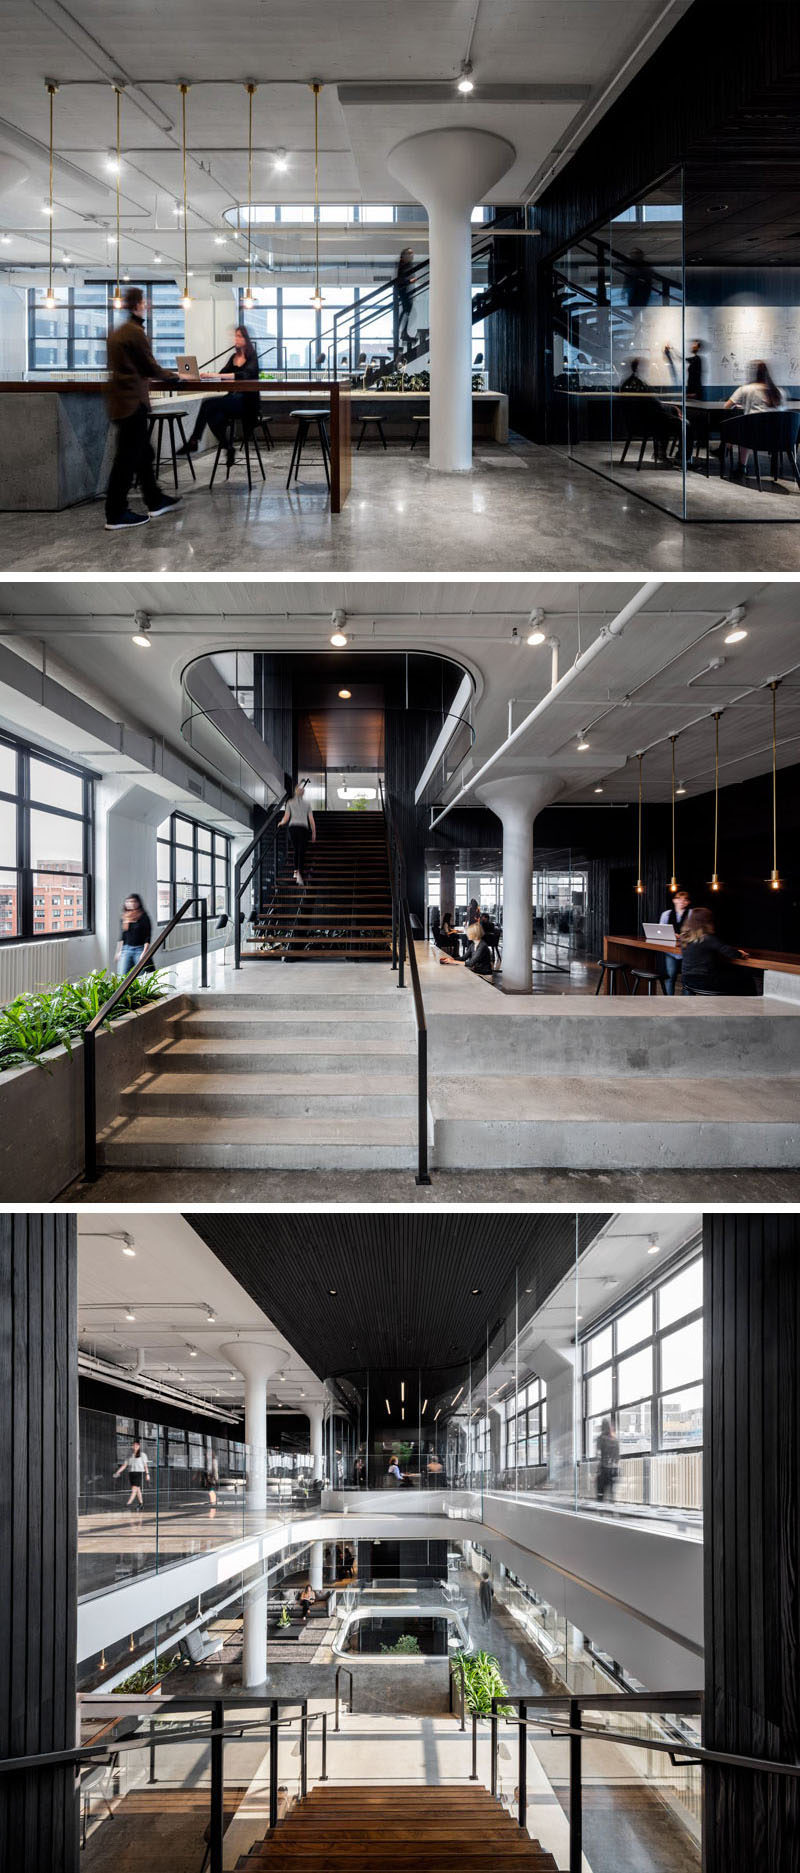 This office space has a common area for working on joint projects, and large windows that fill the various floors with lots of light. Polished concrete floors have been used throughout the office, and wide staircases help to keep the various levels of the office open and connected.